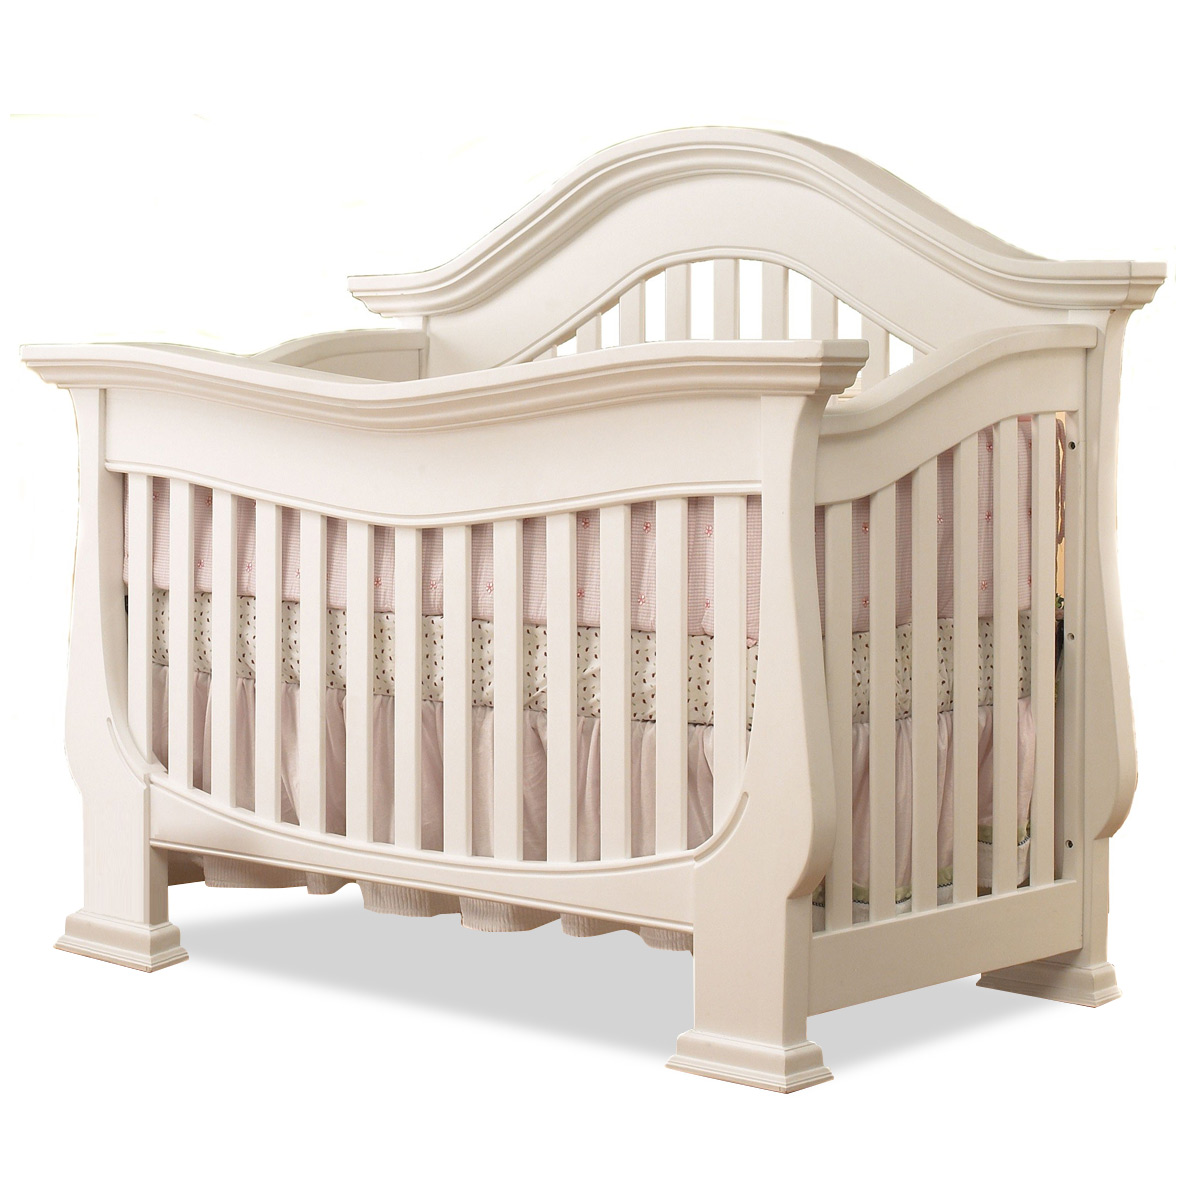 Lusso Century 4 In 1 Crib With Mini Rail In French White Free Shipping